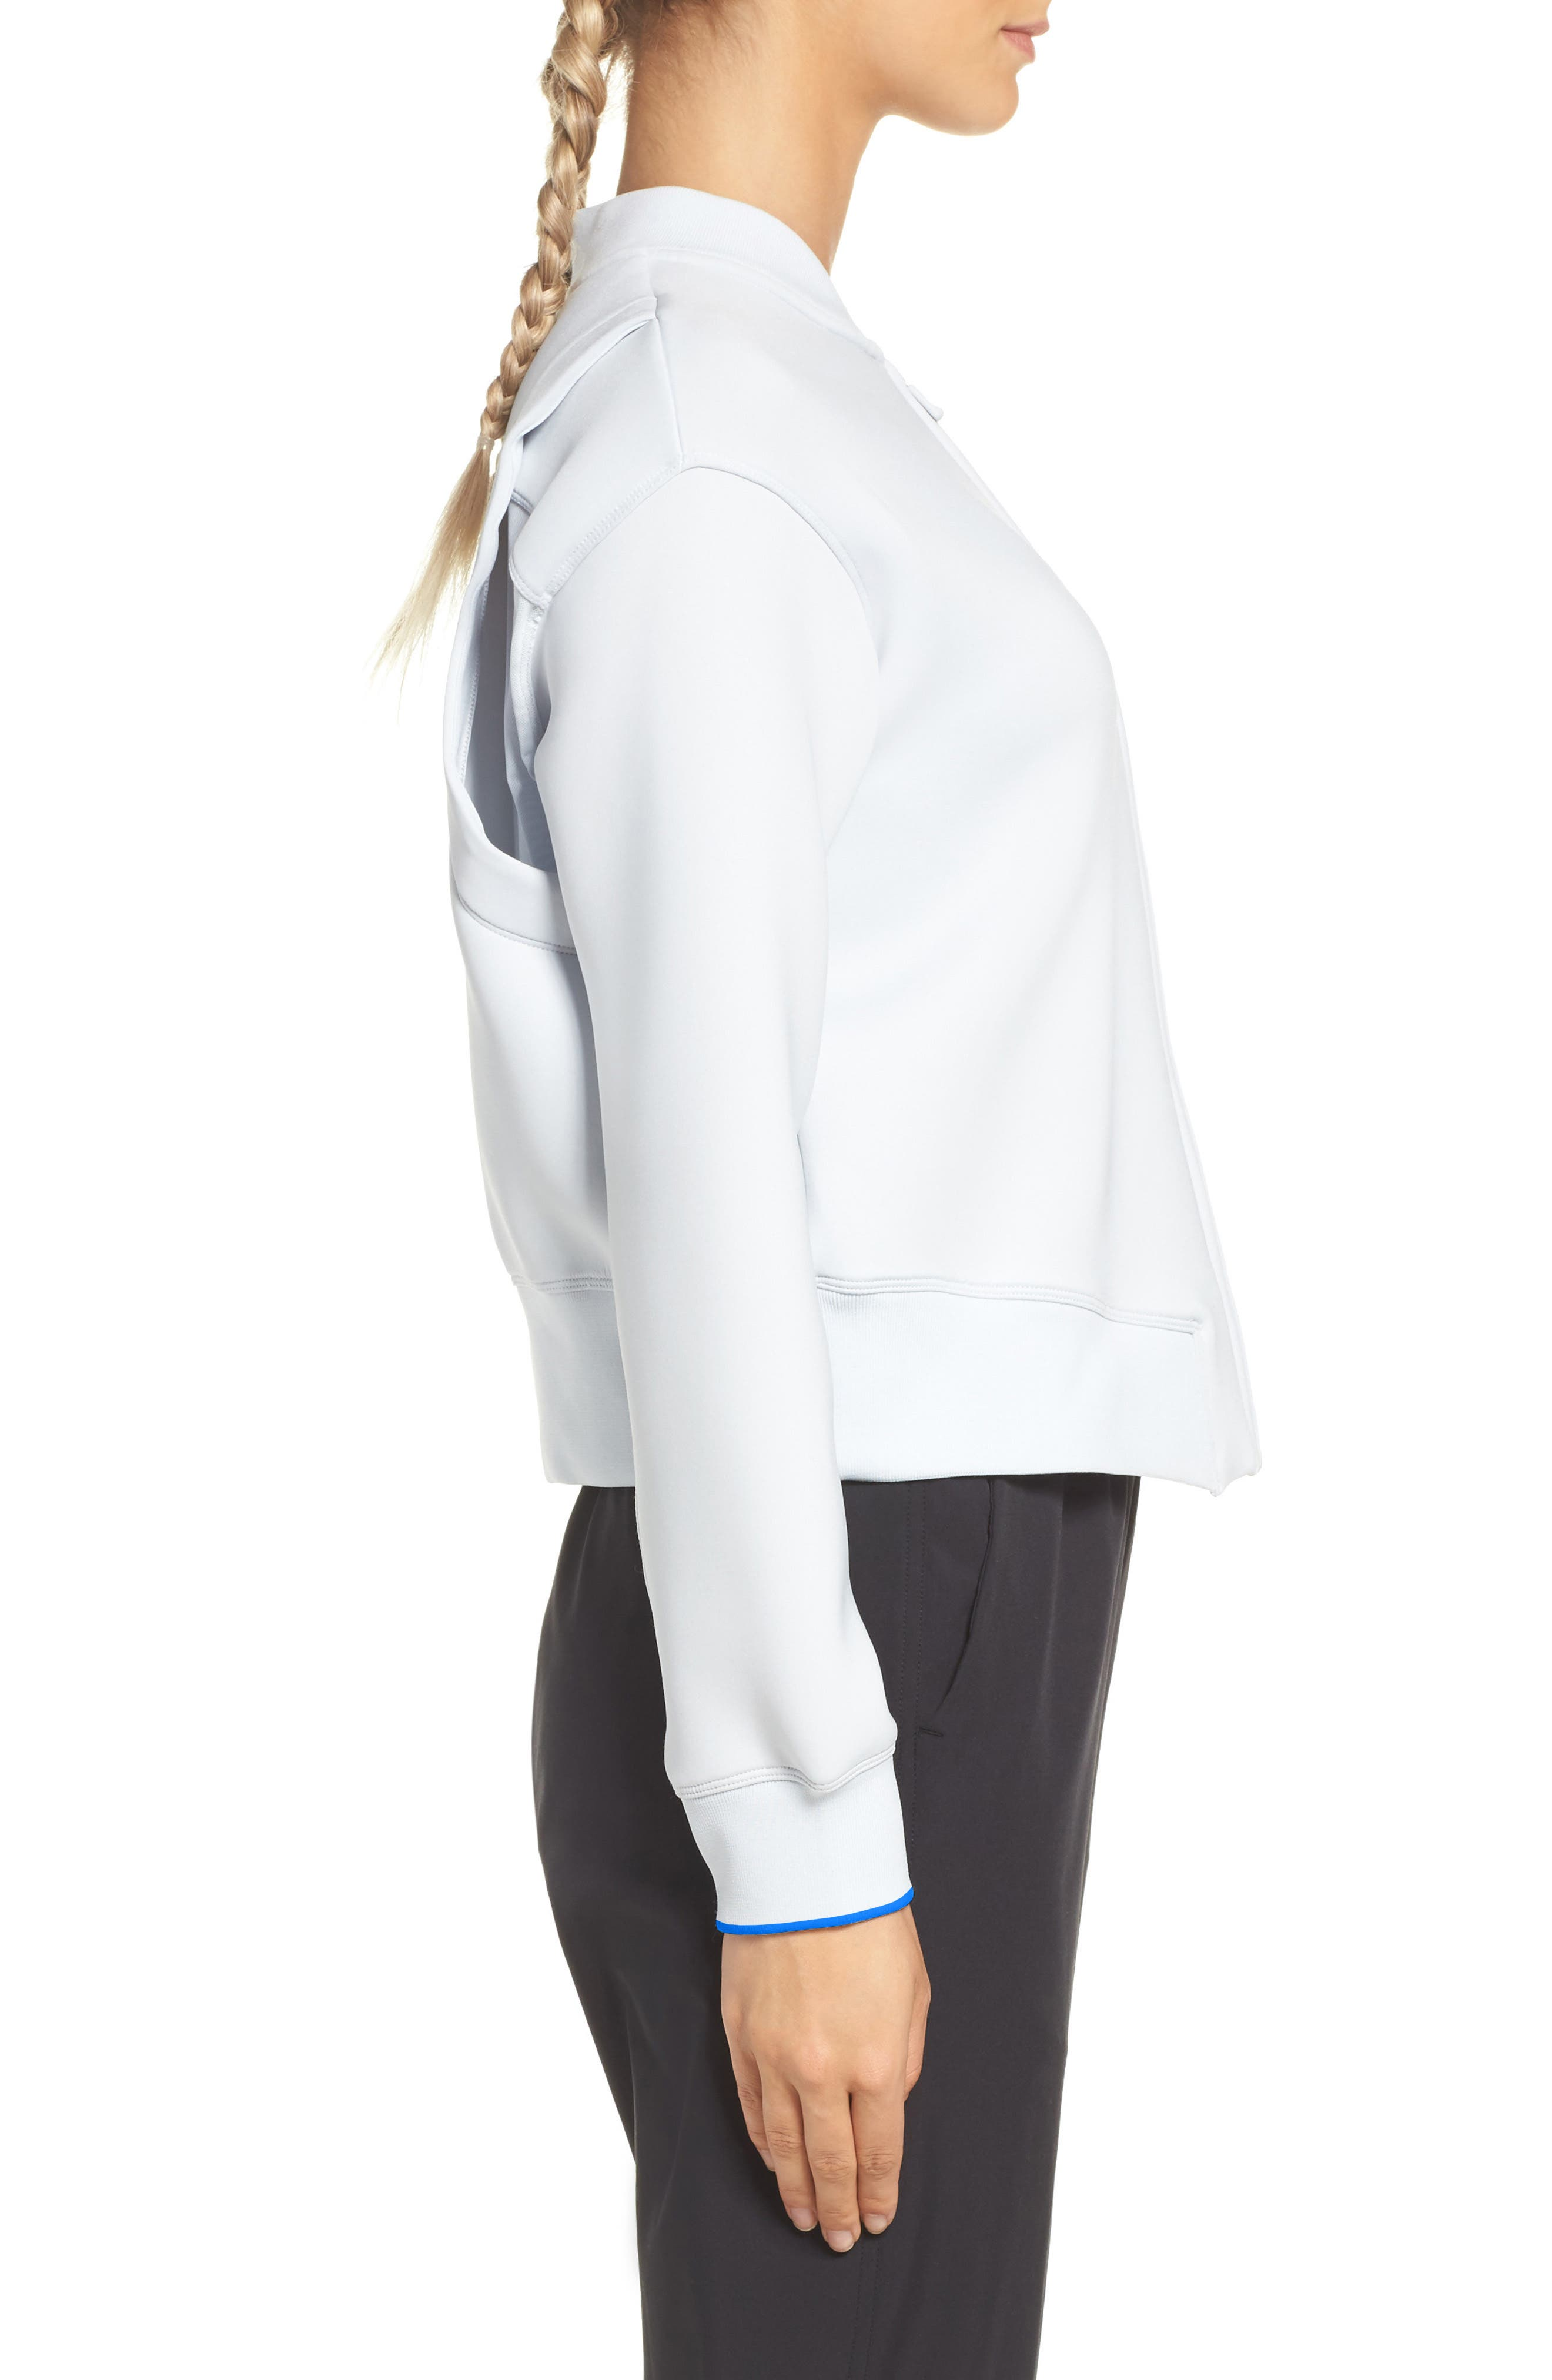 Therma Sphere Max Training Jacket,                             Alternate thumbnail 9, color,